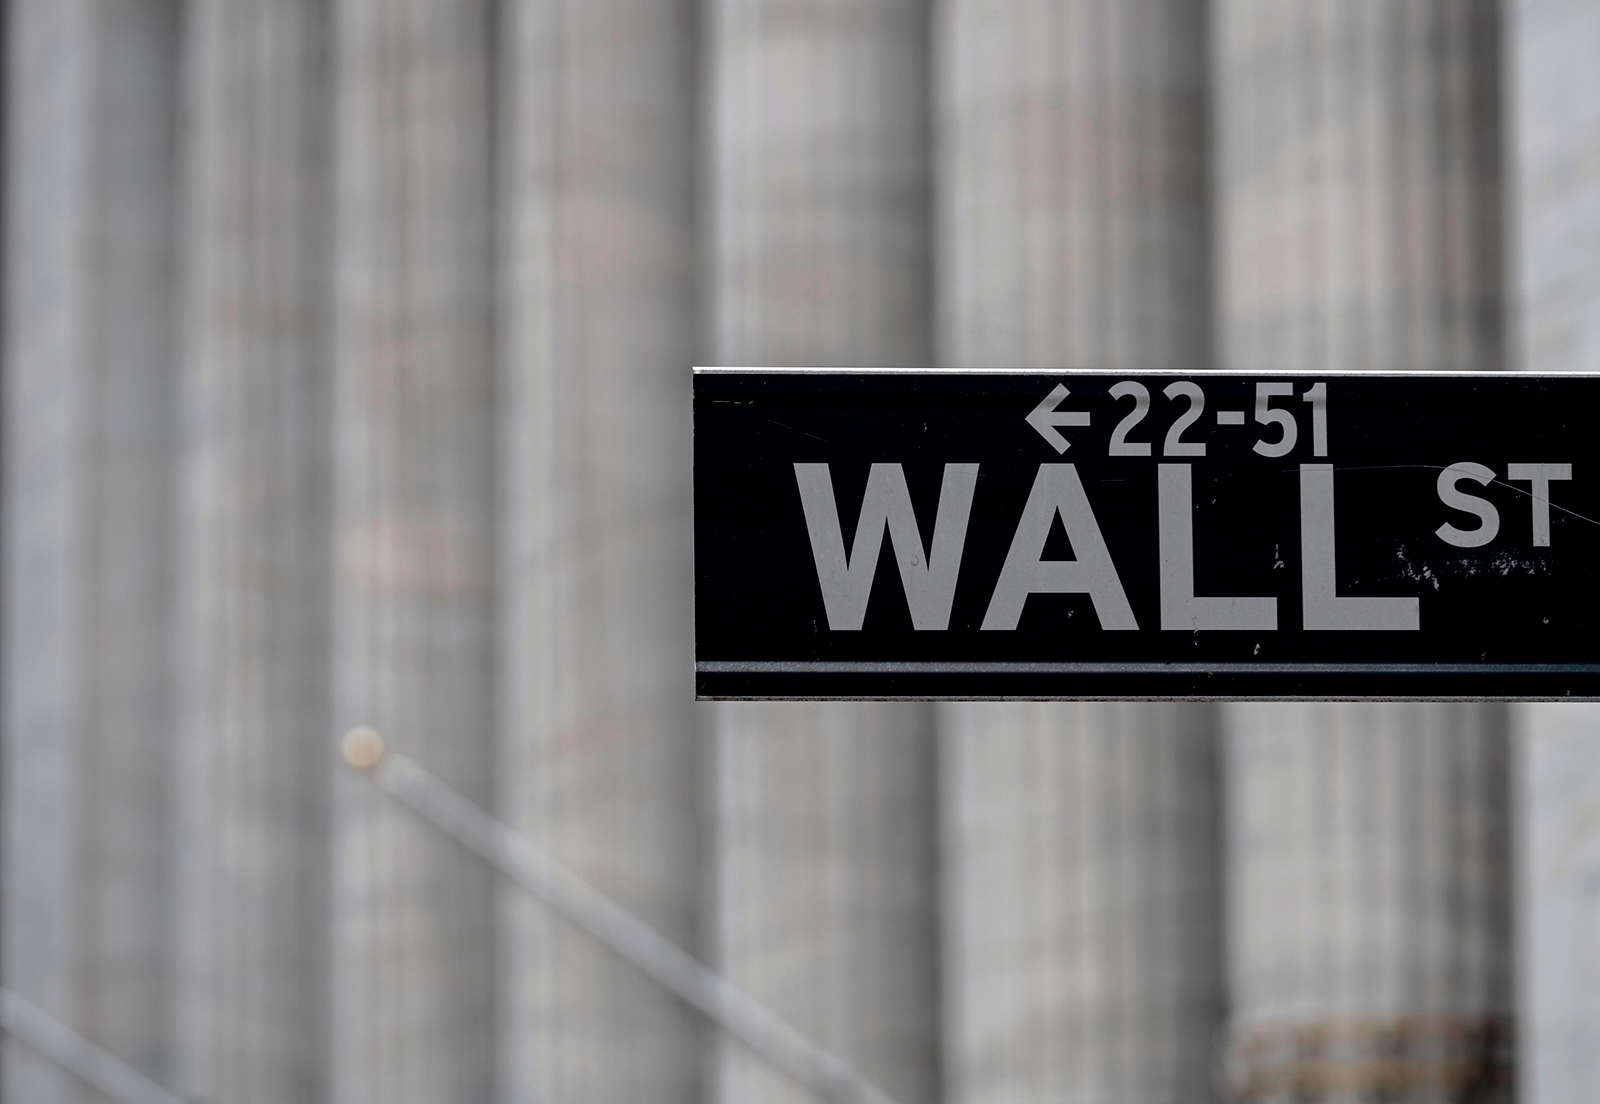 A Wall St. sign near the New York Stock Exchange on May 8, in New York City.